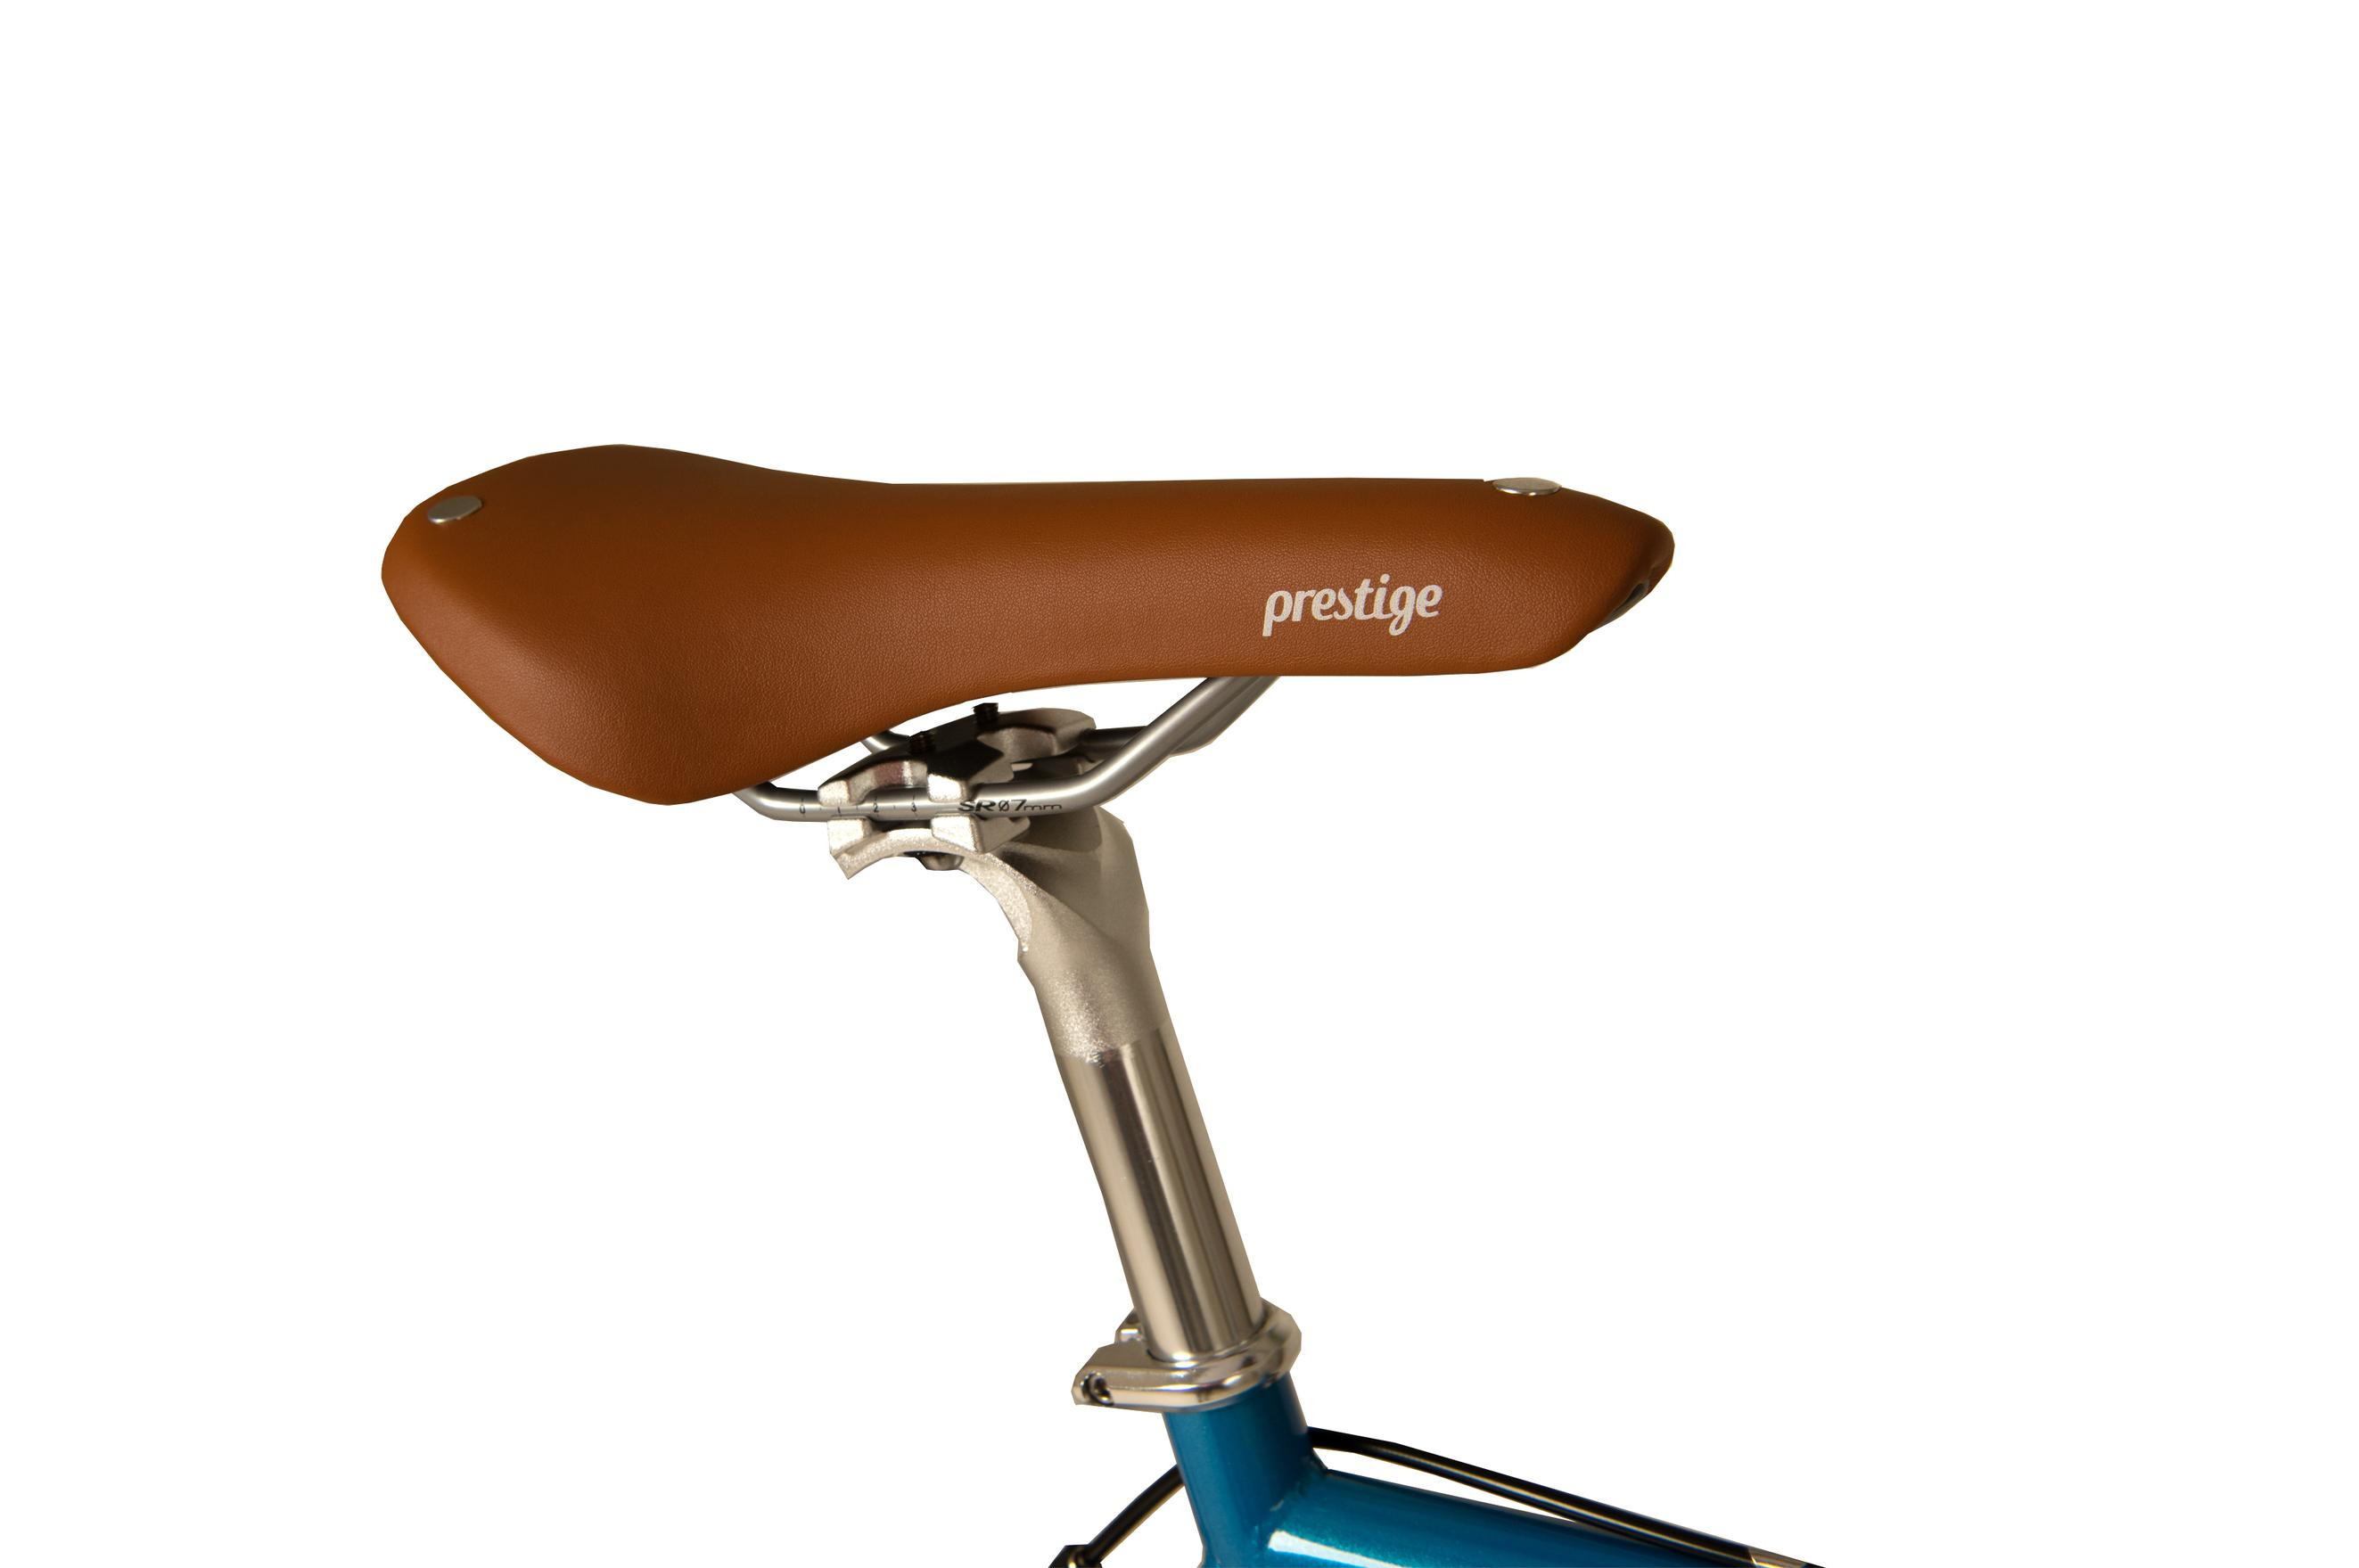 Seat on the Raleigh Propaganda bike